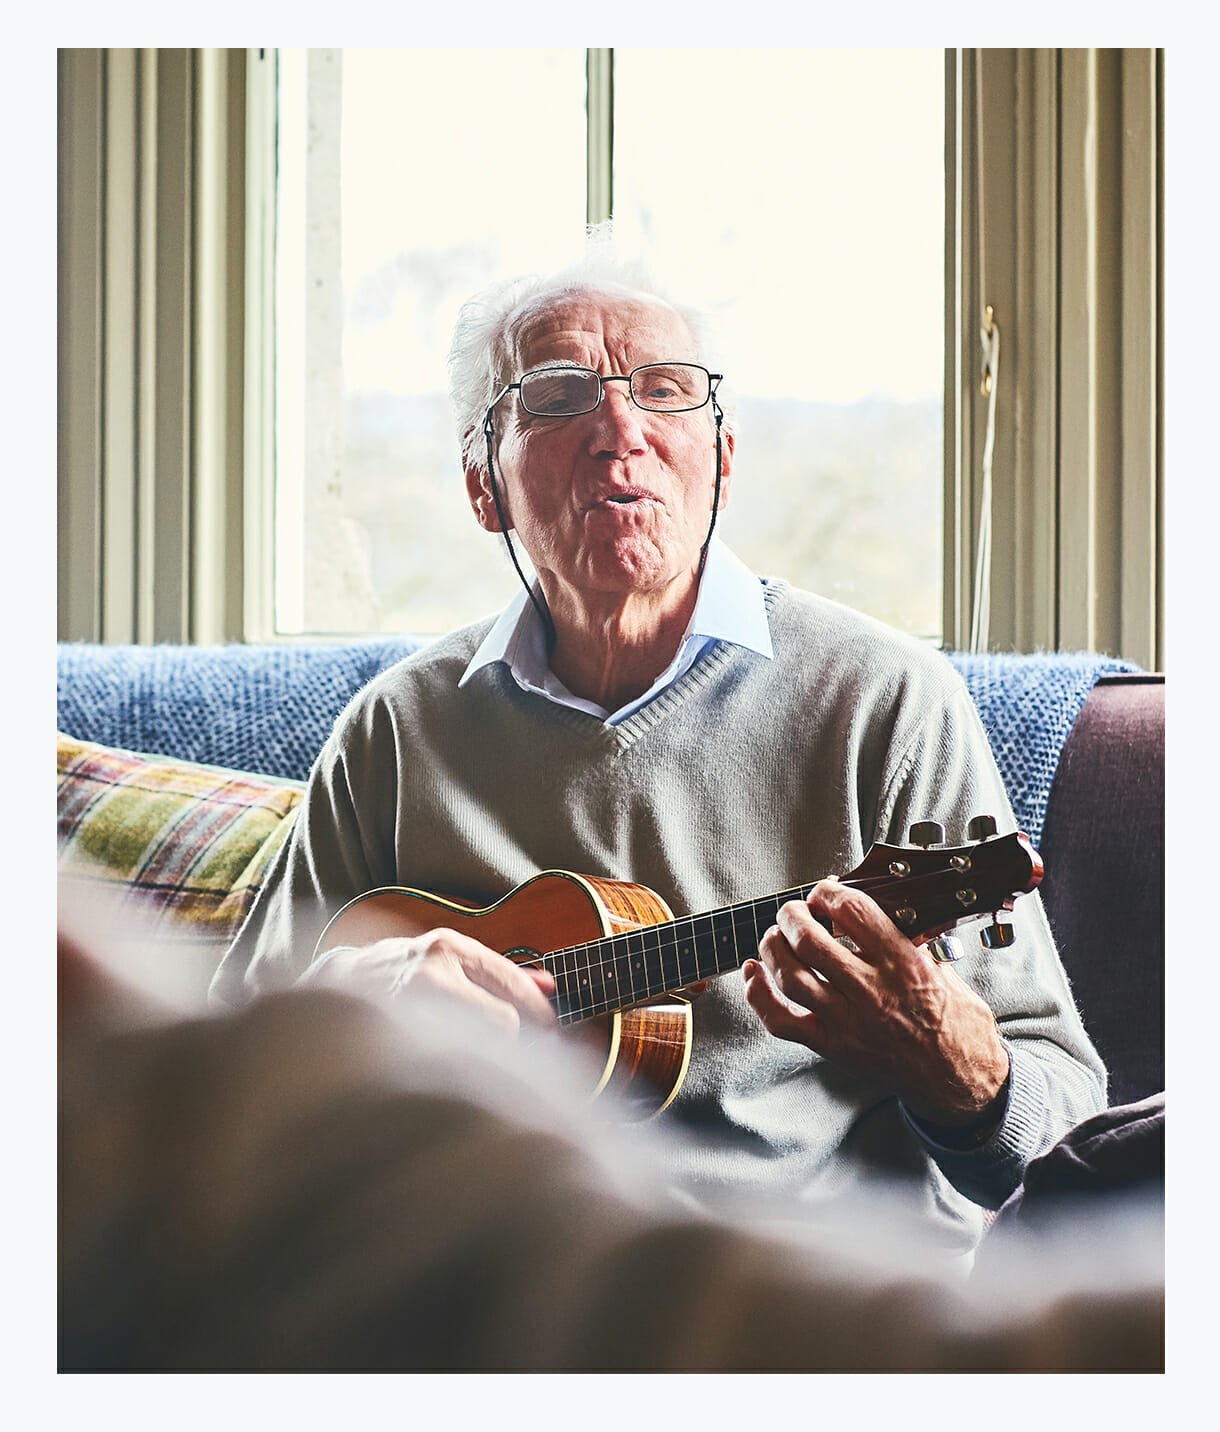 Older gentleman reminiscing playing older songs on a guitar in his spacious luxurious assisted living apartment